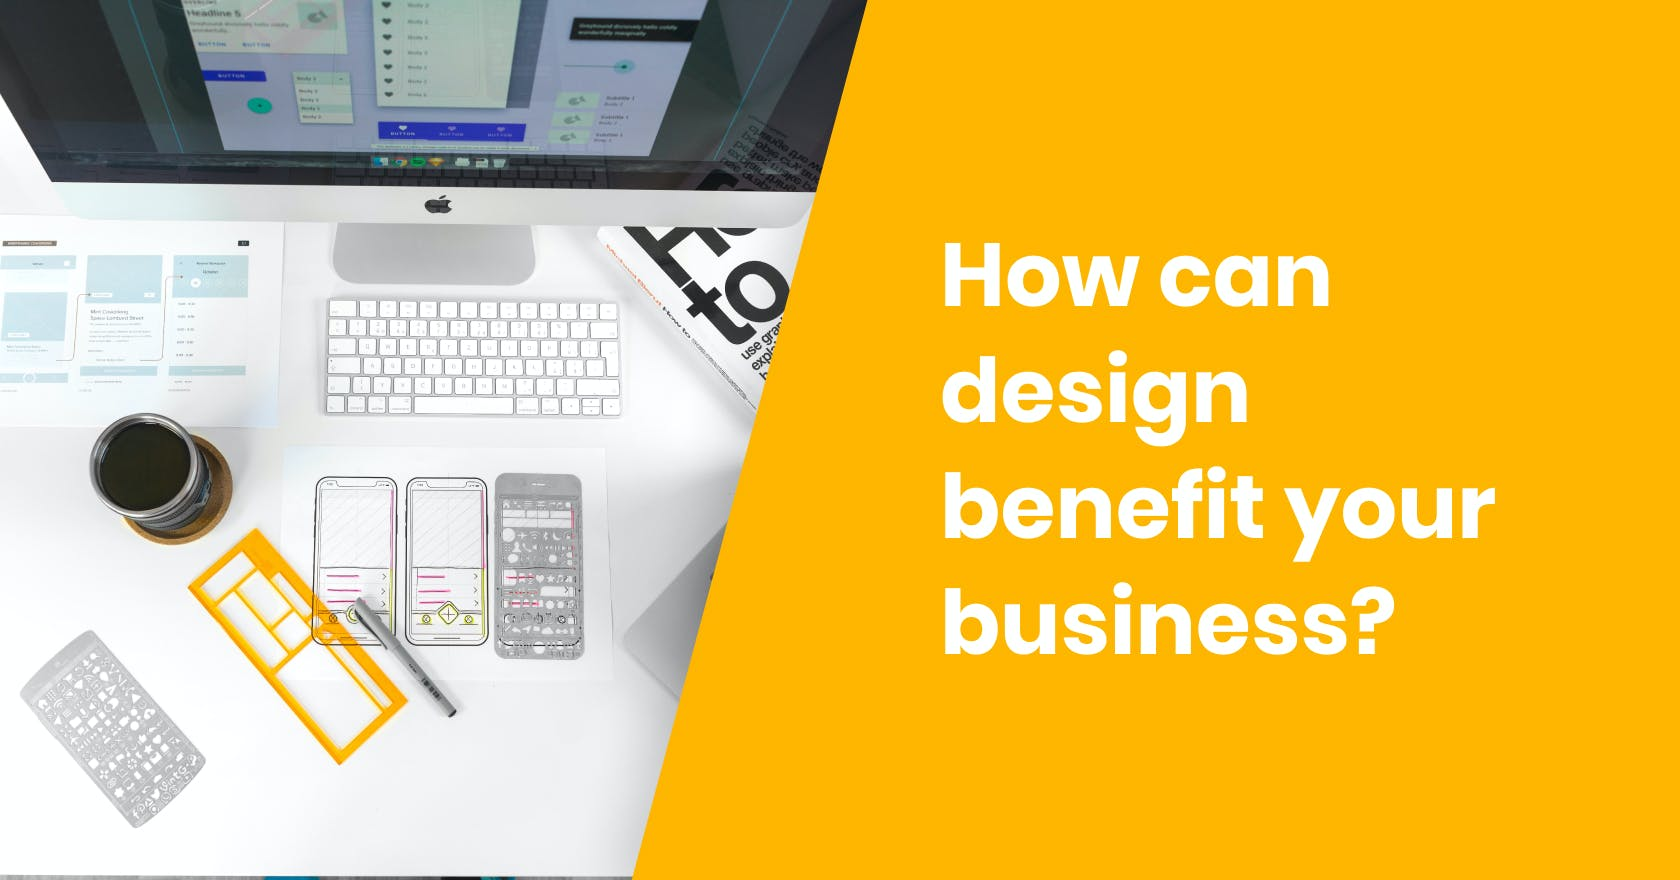 Nightborn - How can design benefit your business?